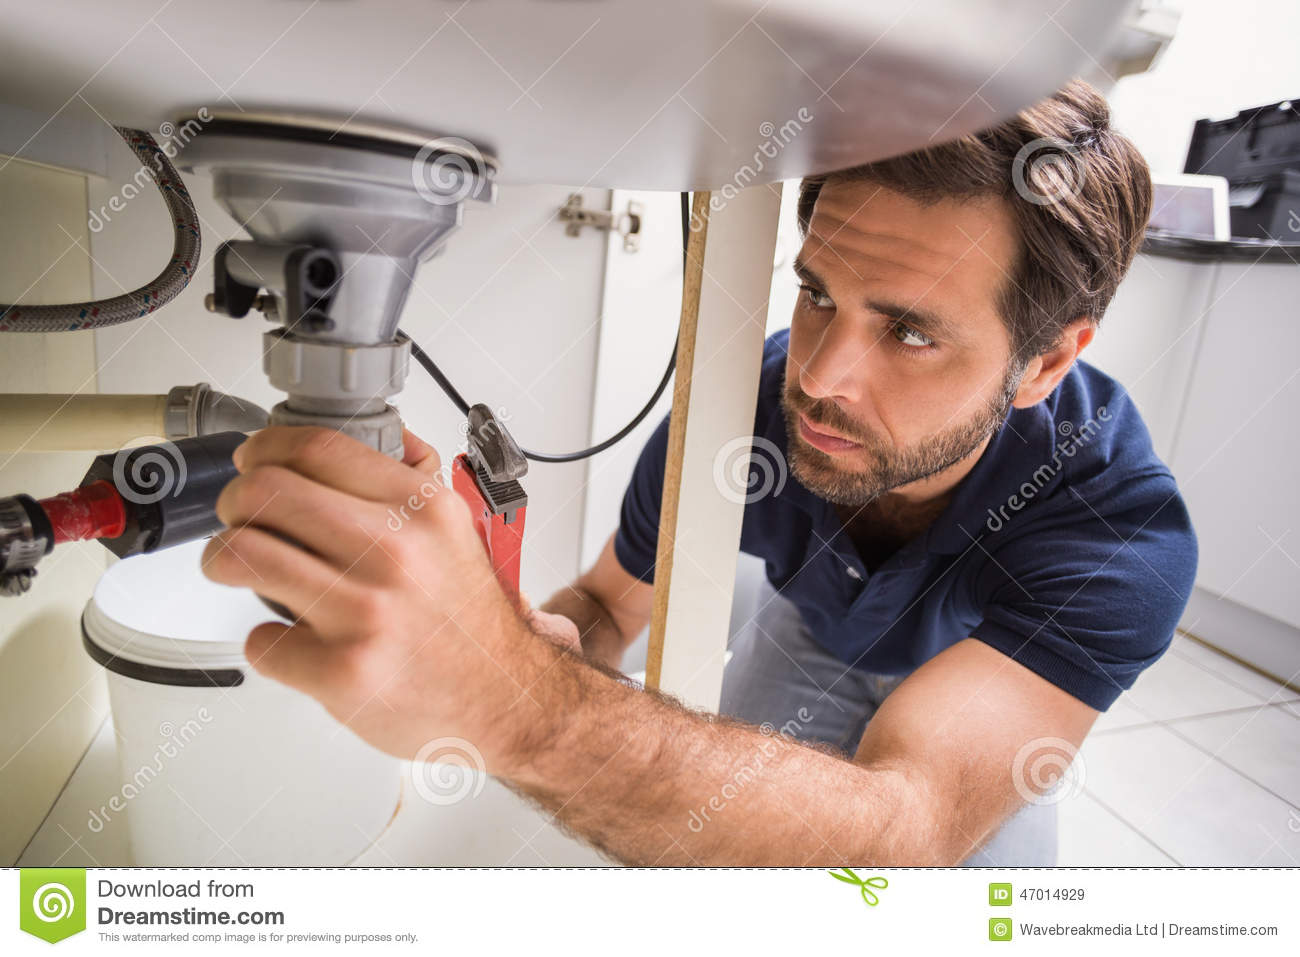 plumber-fixing-under-sink-kitchen-47014929.jpg